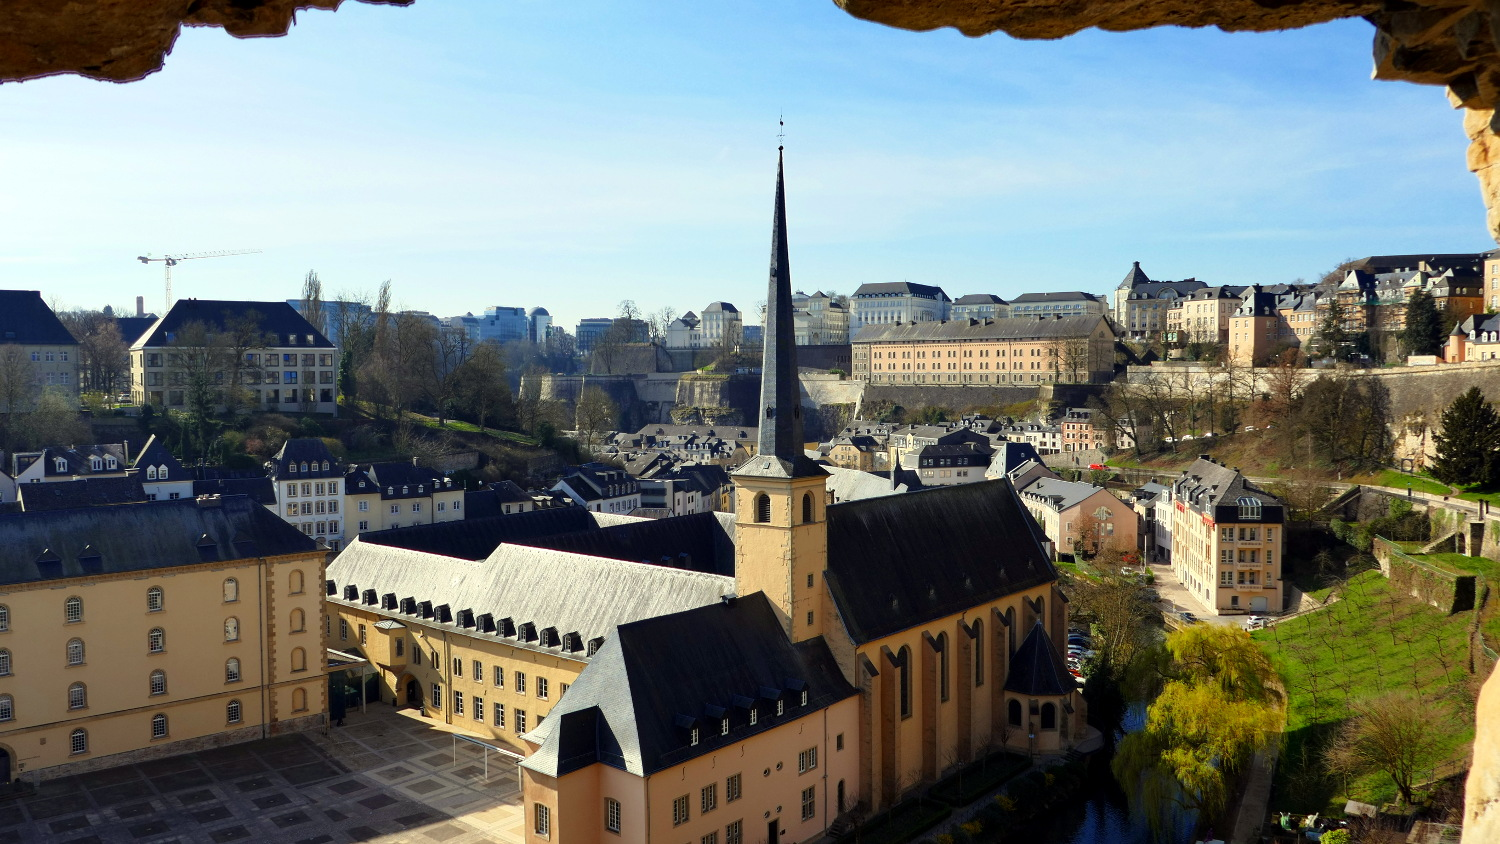 A view of Luxembourg, Luxembourg from an opening within a Casemate.